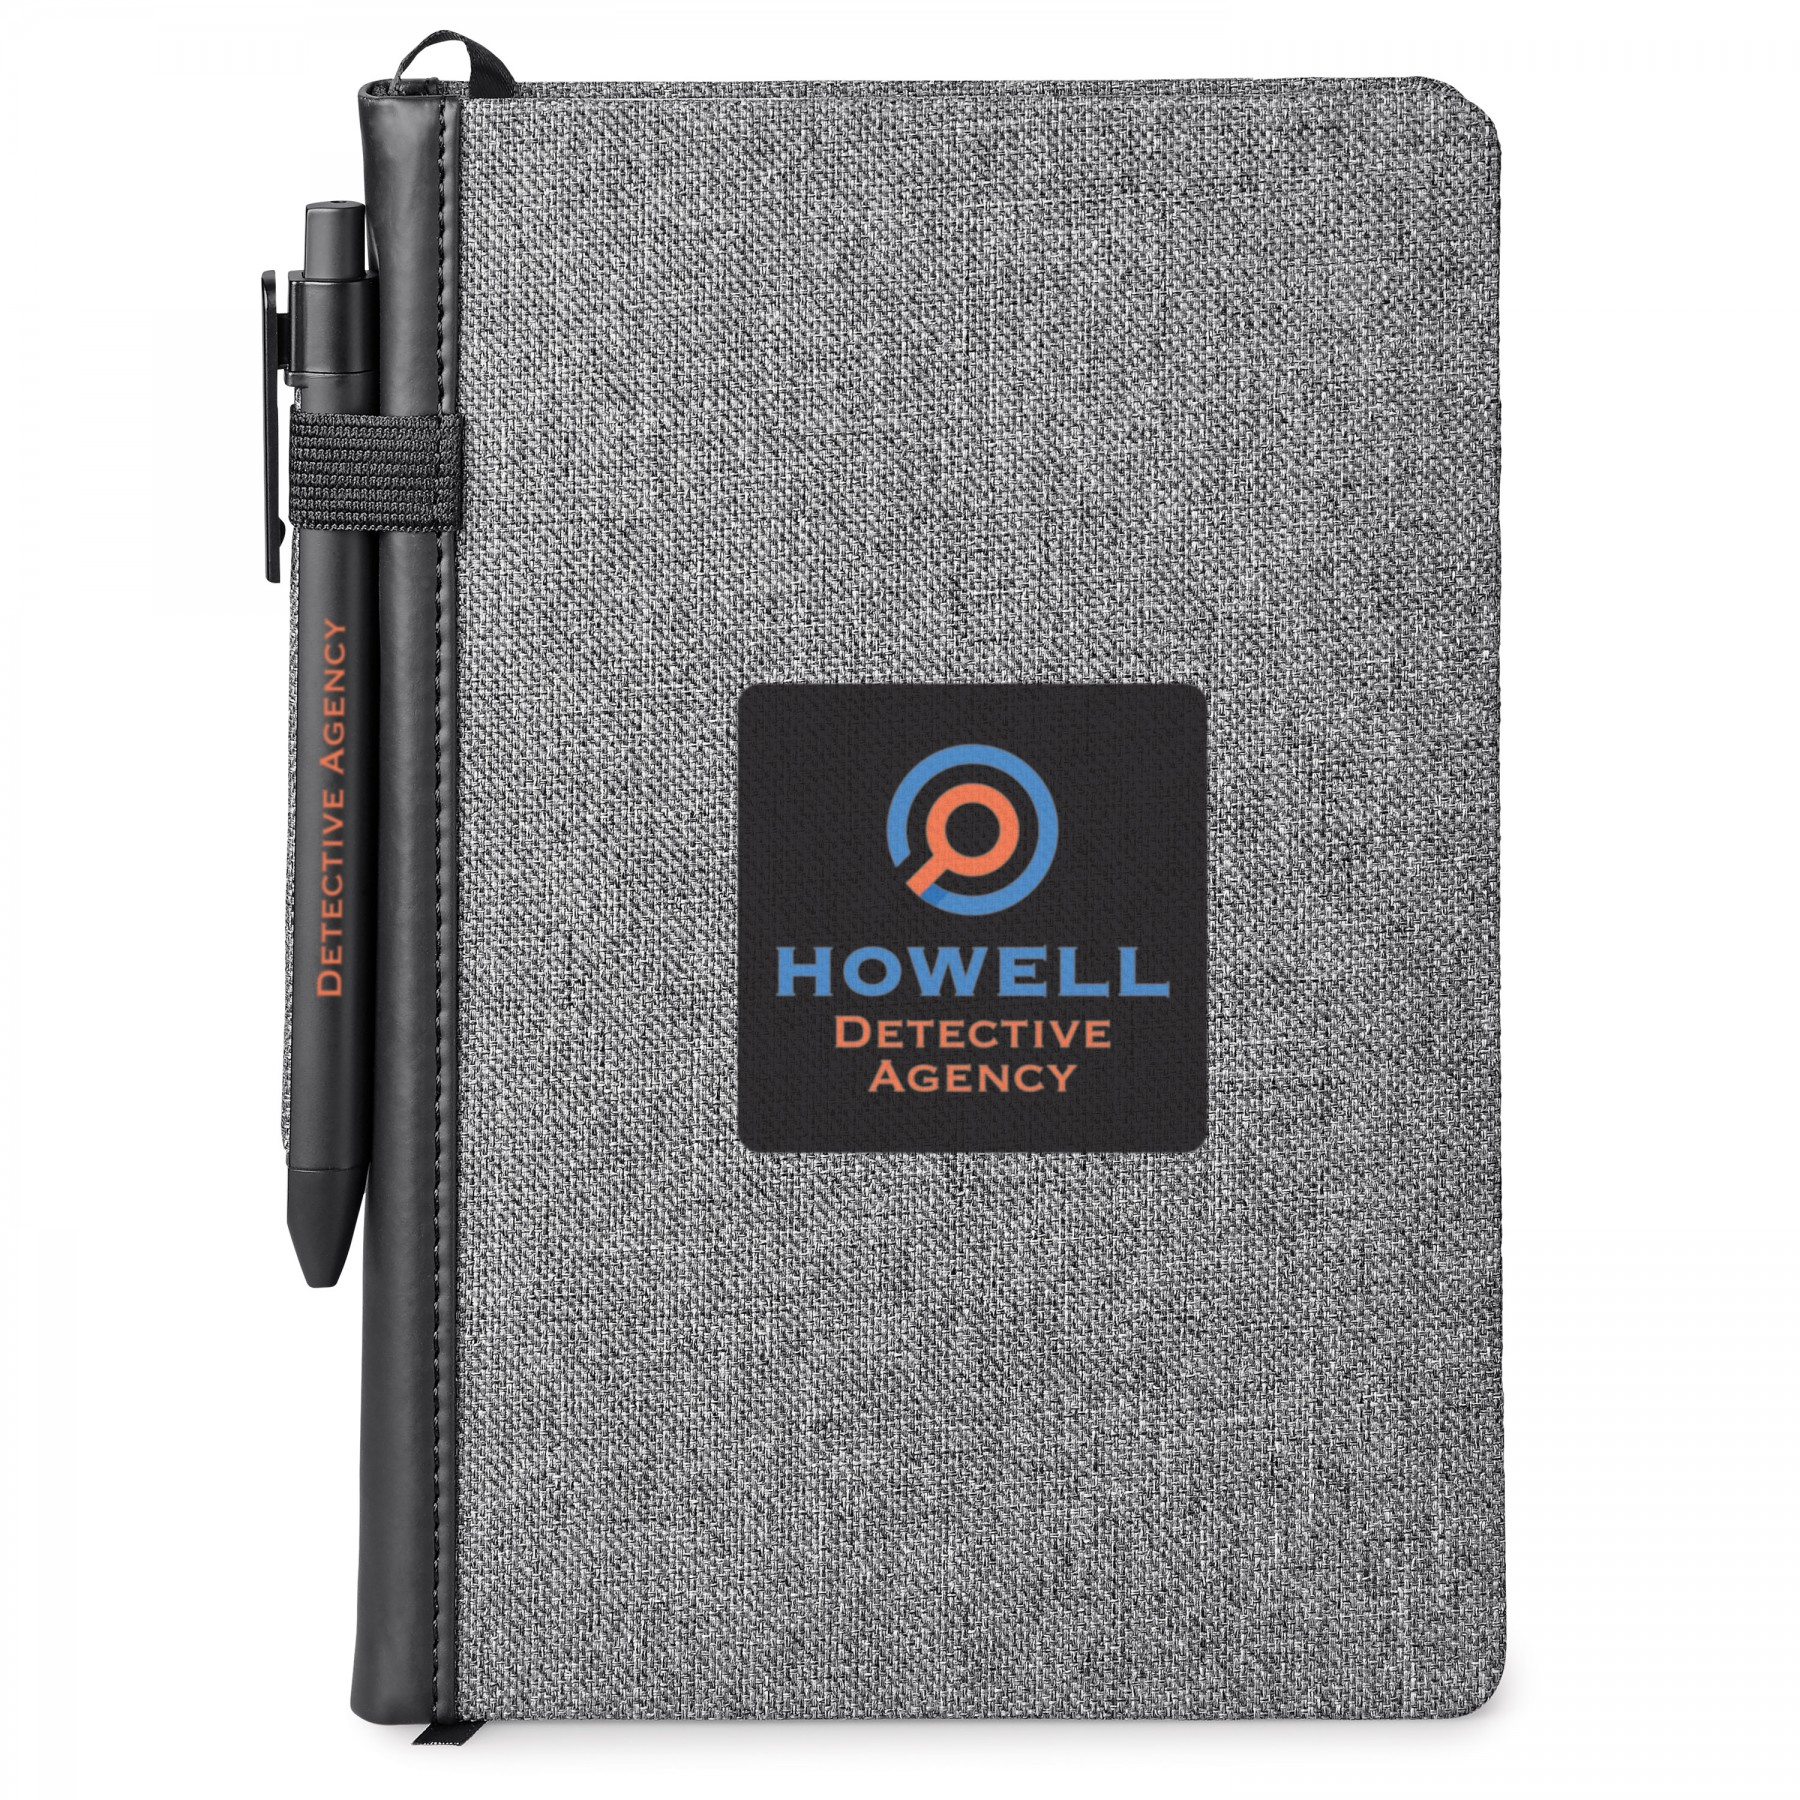 Nomad Hard Cover Journal Combo, ST4572, Full Colour Imprint